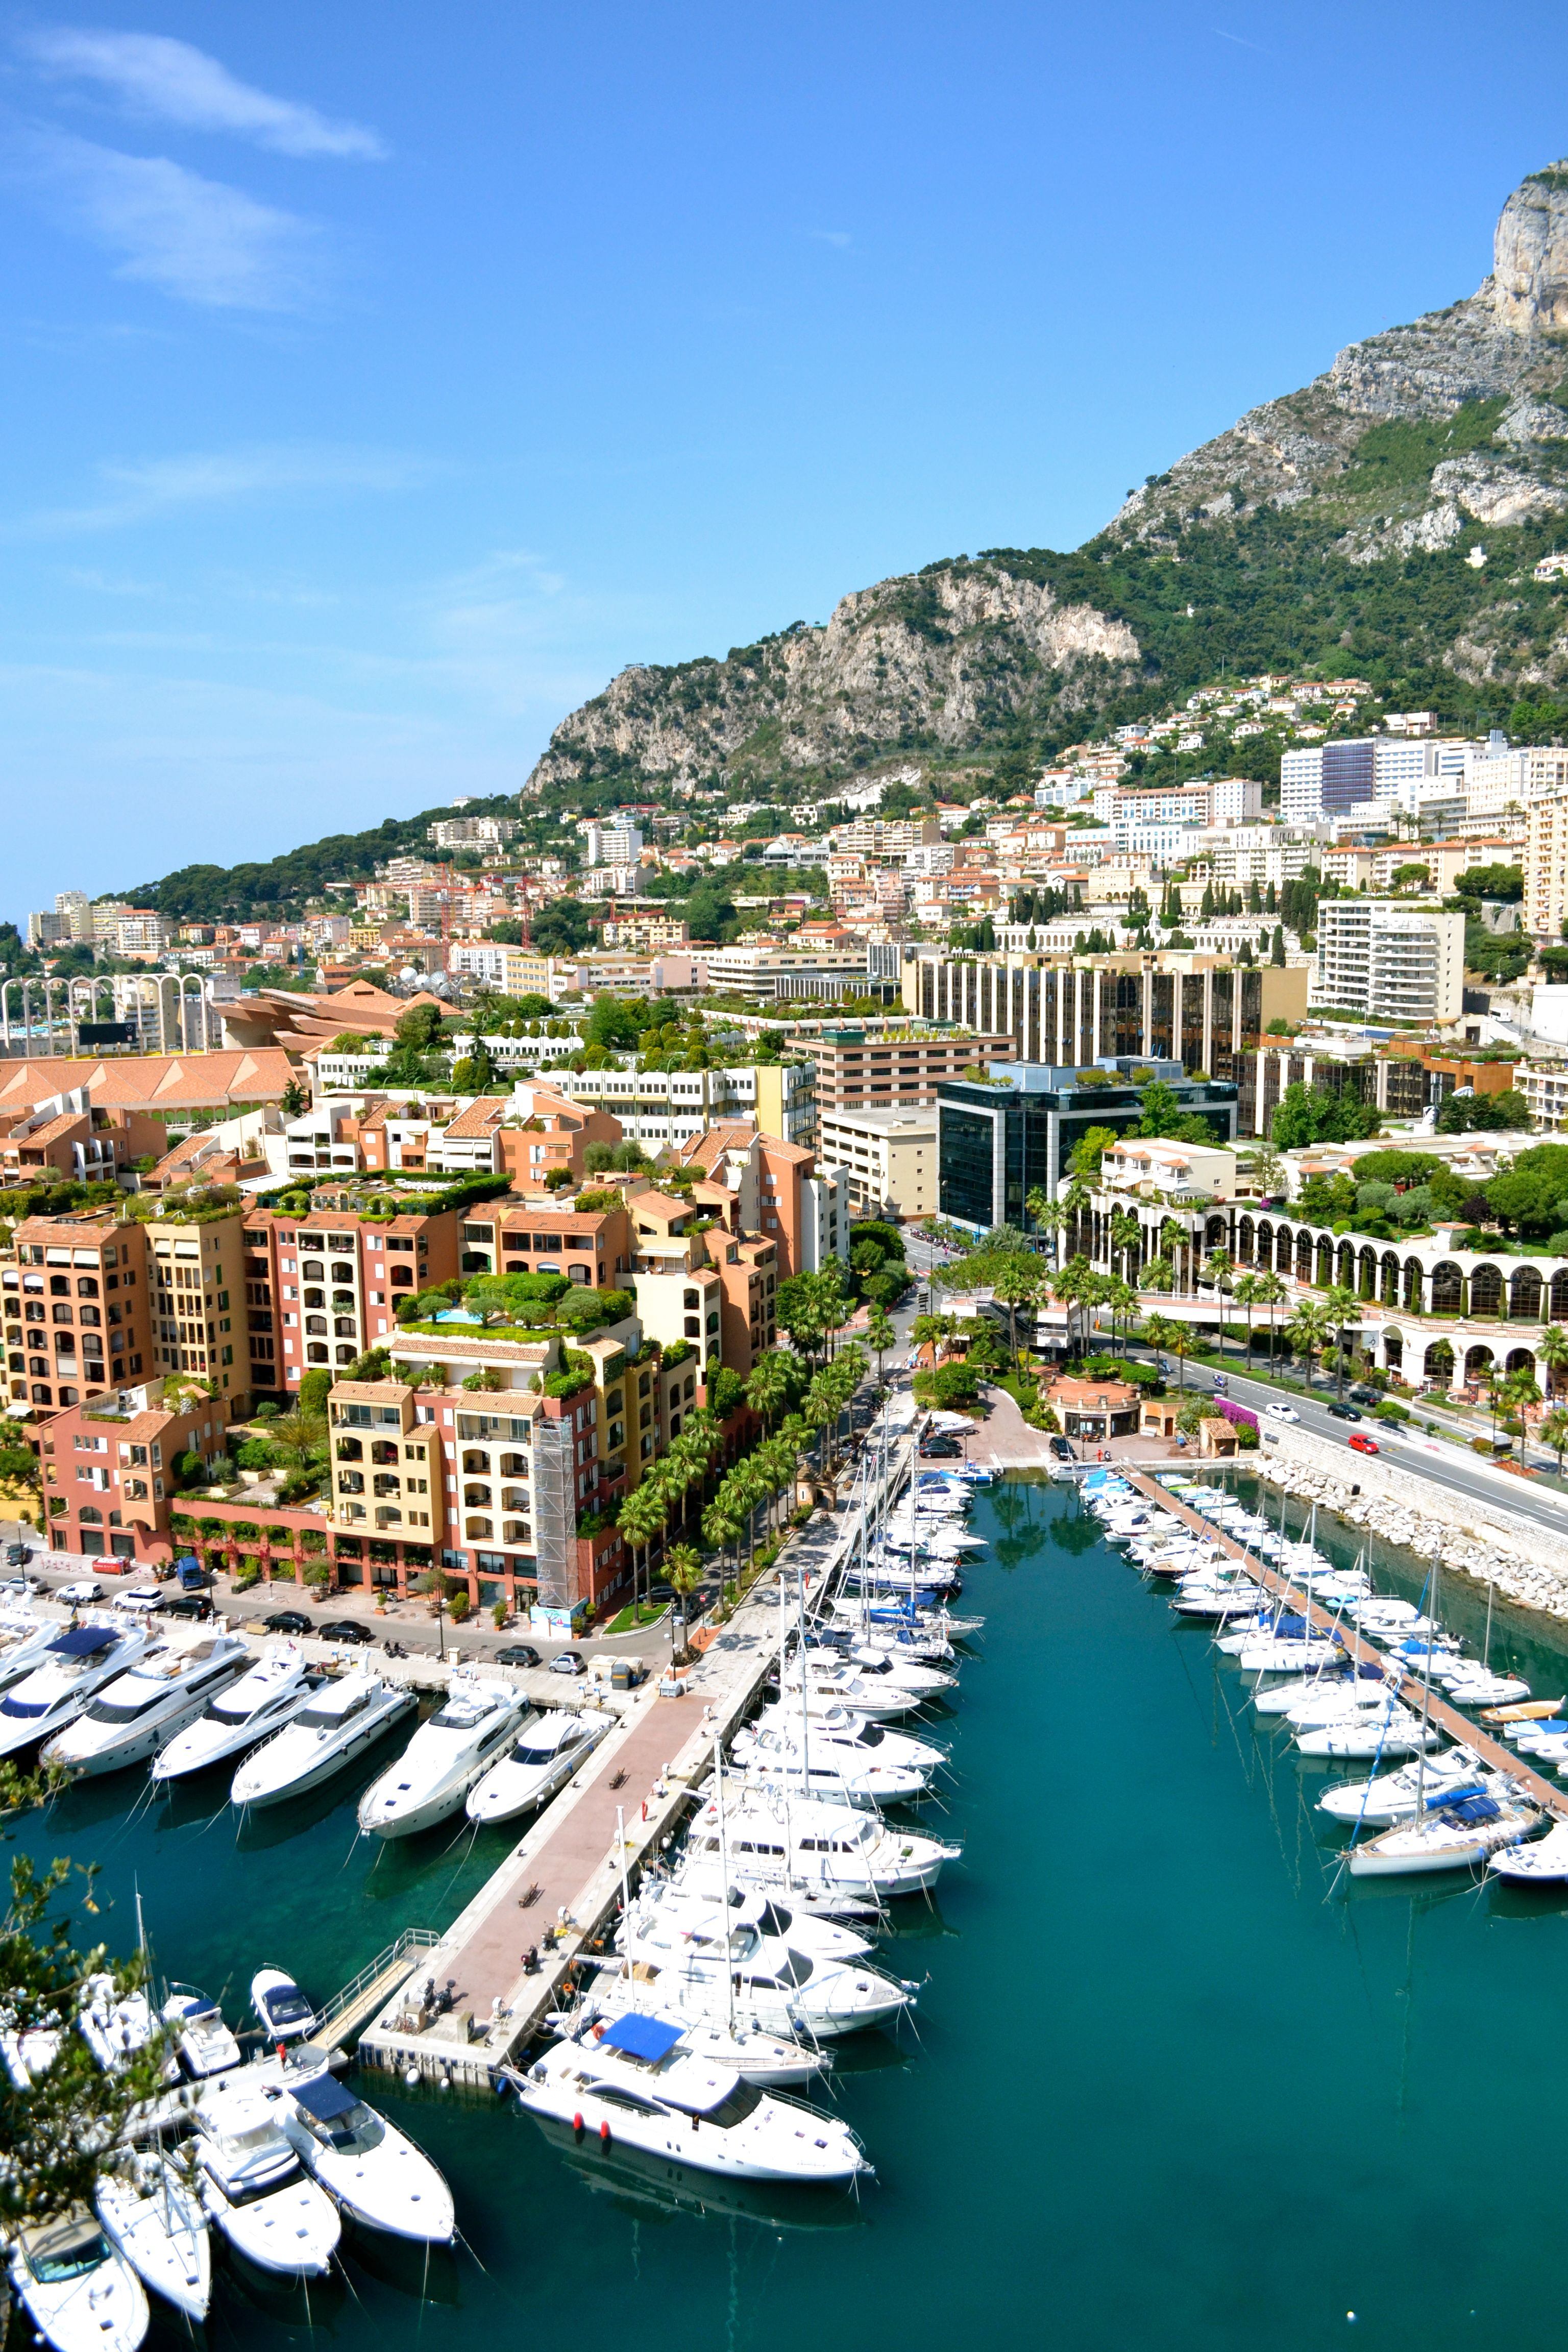 Monaco A Sovereign City State In The French Riviera Western Europe Bordered On 3 Sides By France With Places To Travel Travel Around The World Places To Go